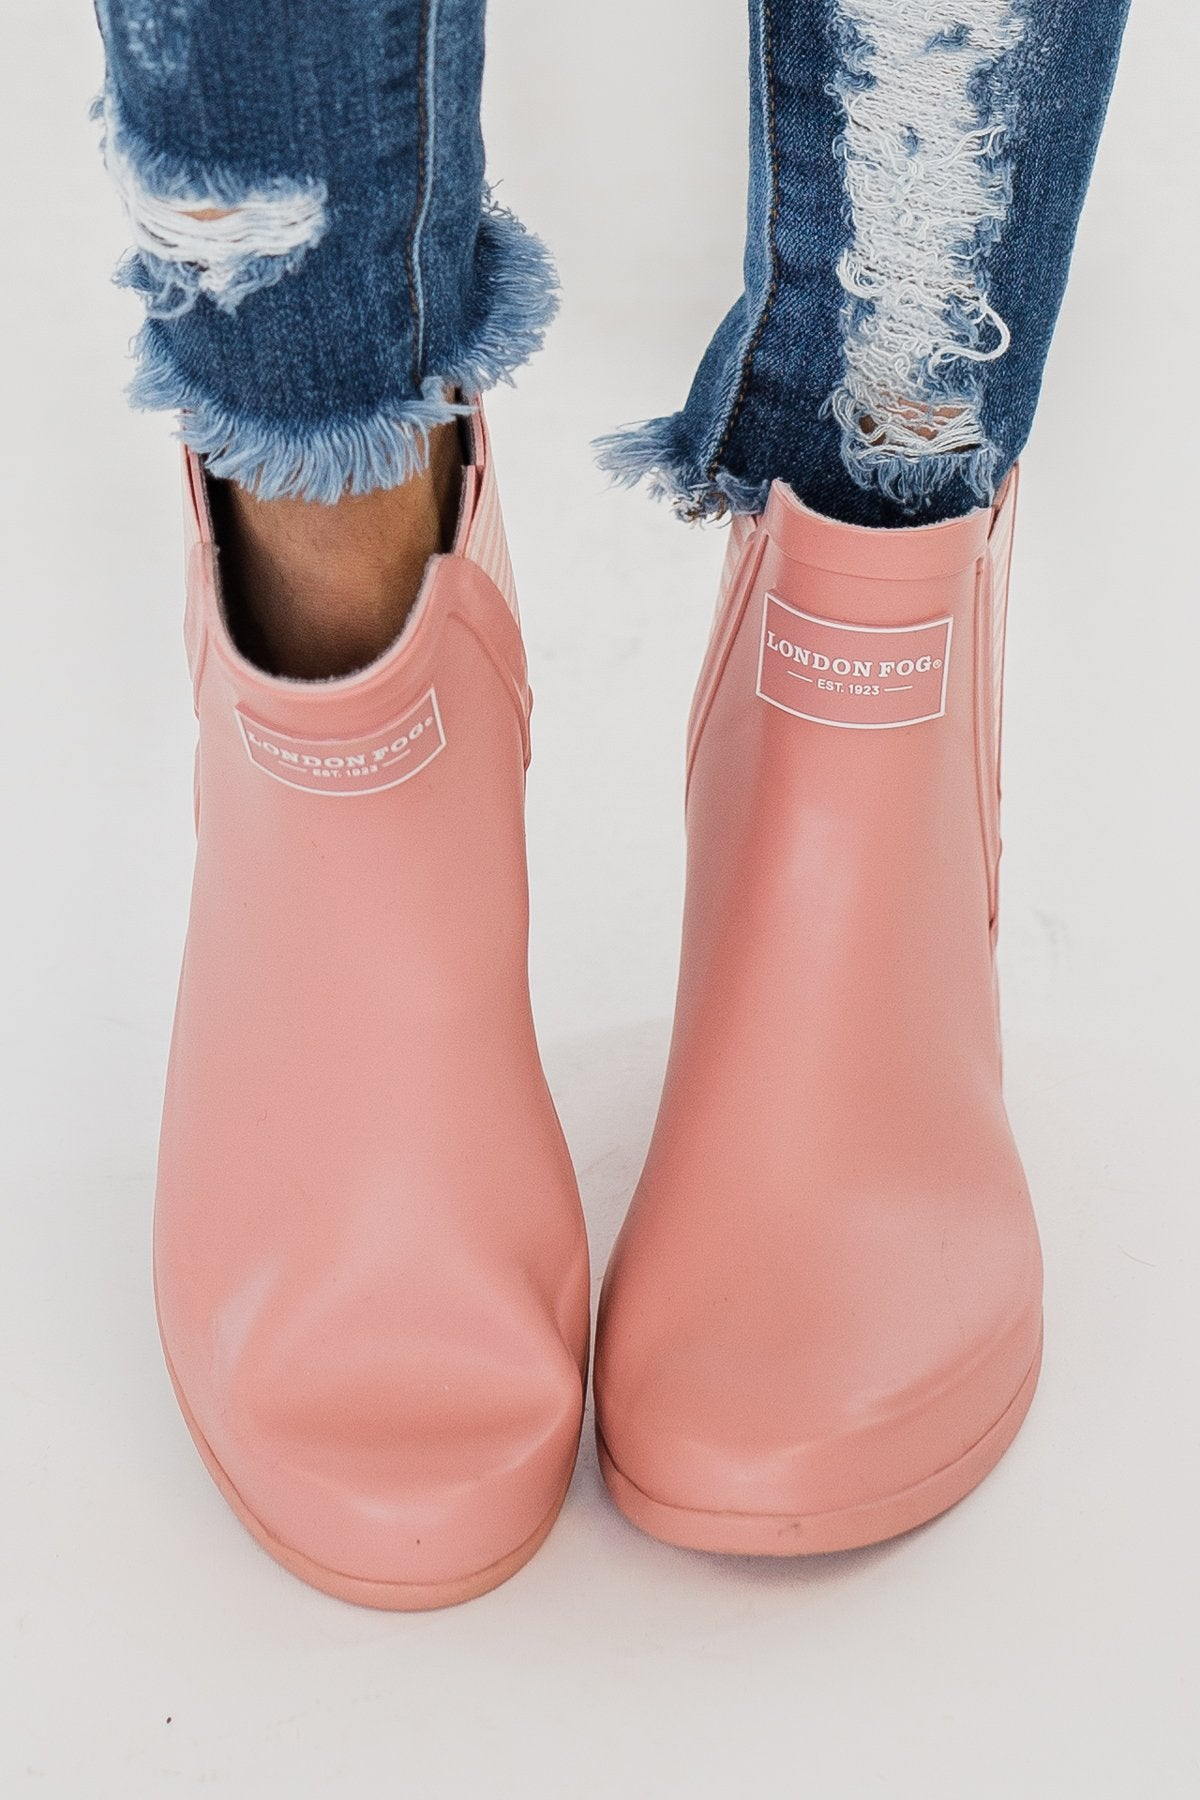 London Fog Piccadilly Rain Booties- Pale Pink